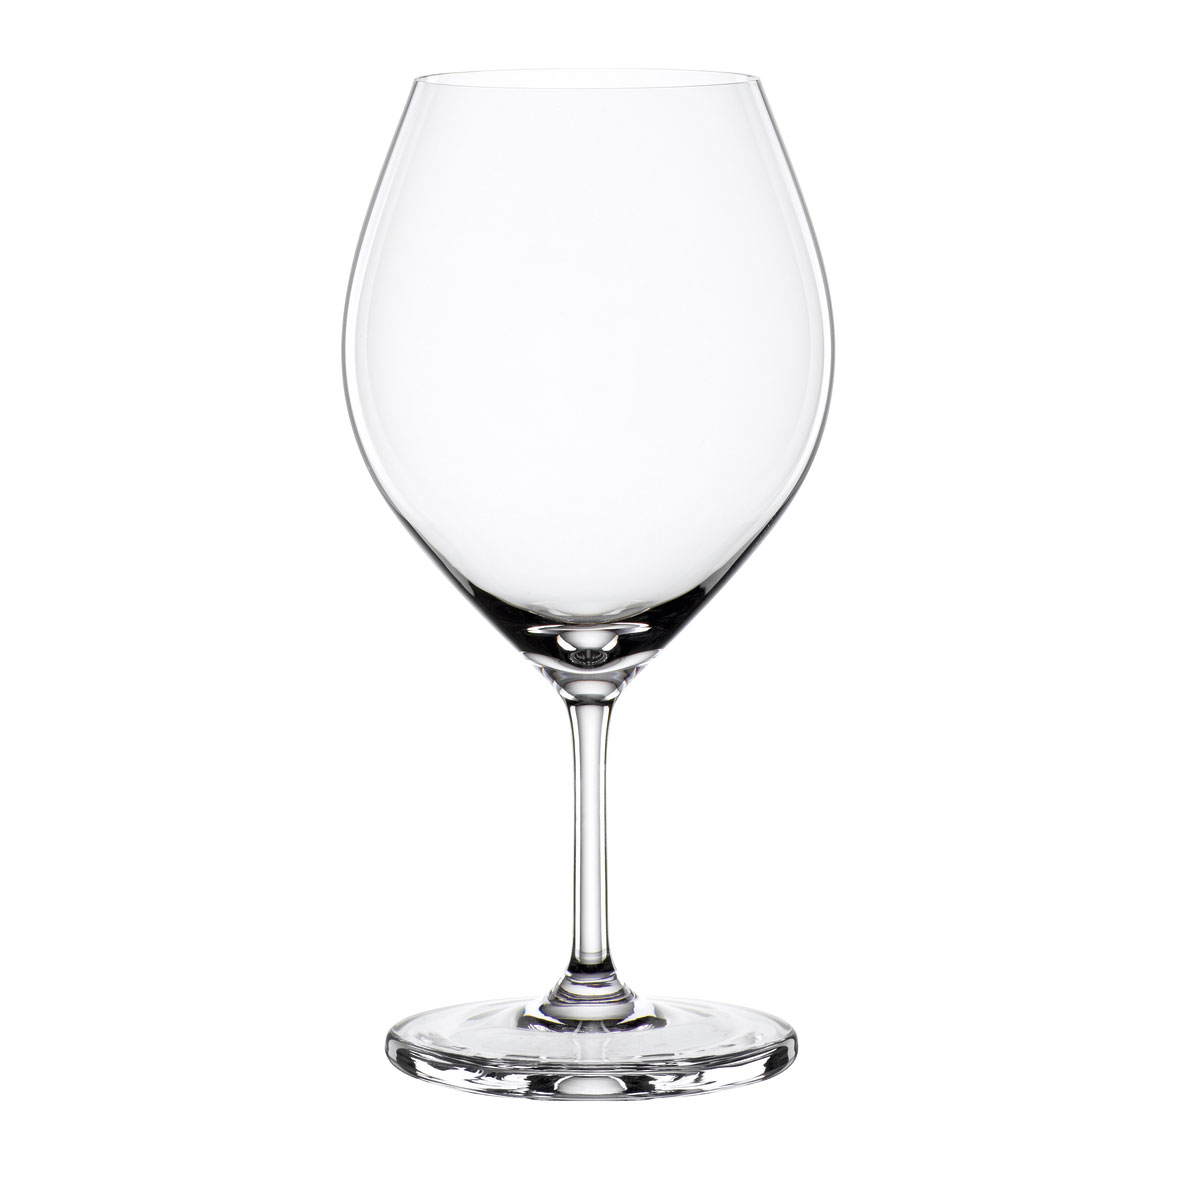 Libbey Glass 4208000 glass, wine